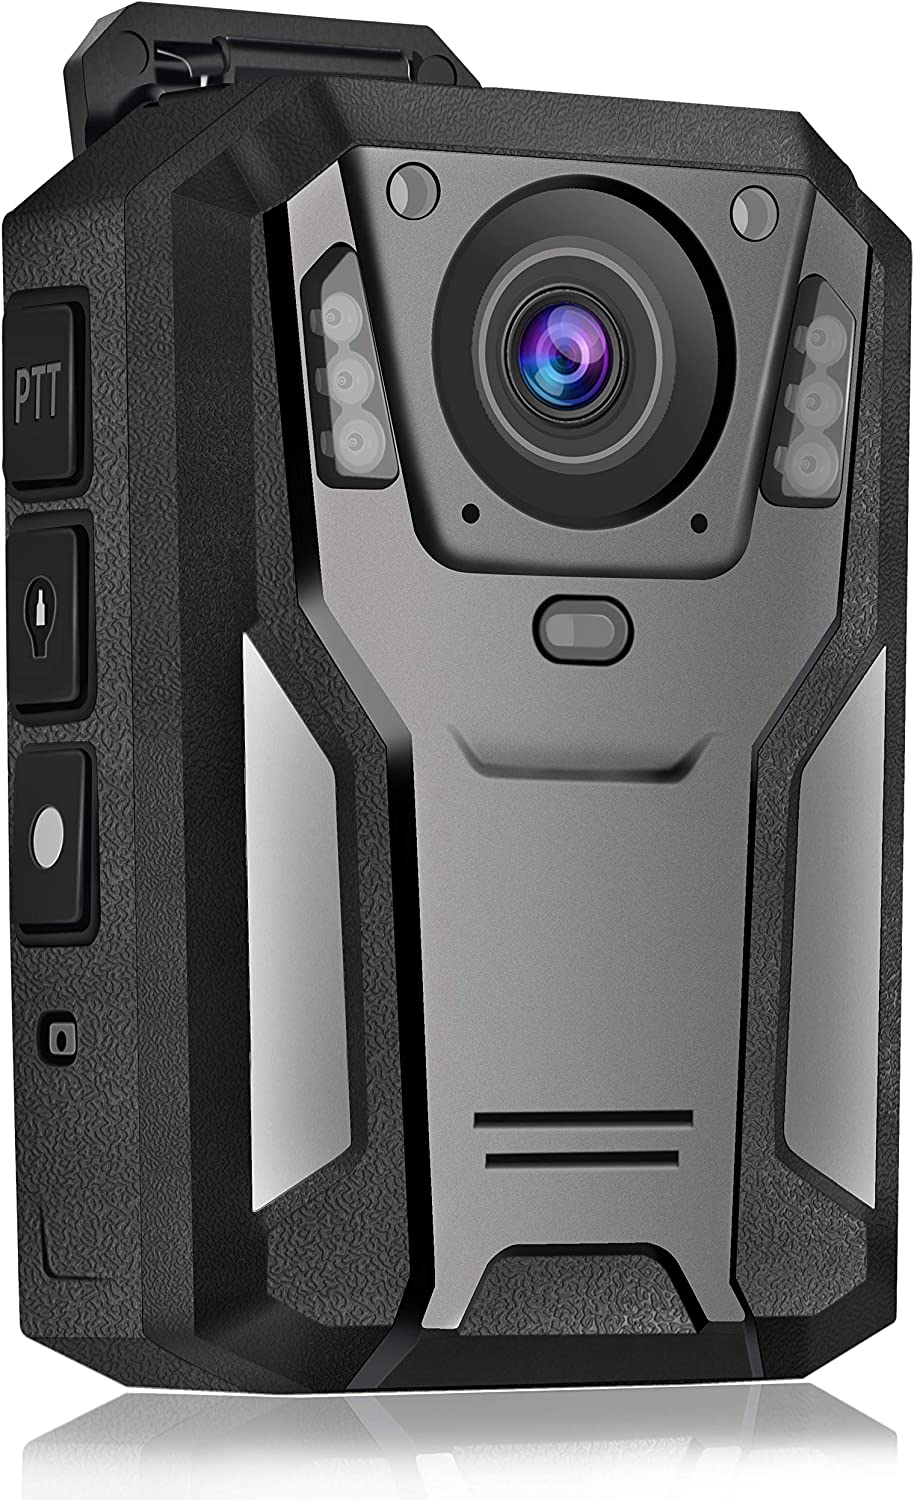 """Aolbea 1440P UHD Police Body Camera Built-in 64GB Record Video Audio Picture 2.0"""" LCD Infrared Night Vision,3300 mAh Battery Waterproof Shockproof Lightweight Data-encrypt for Law Enforcement Record"""